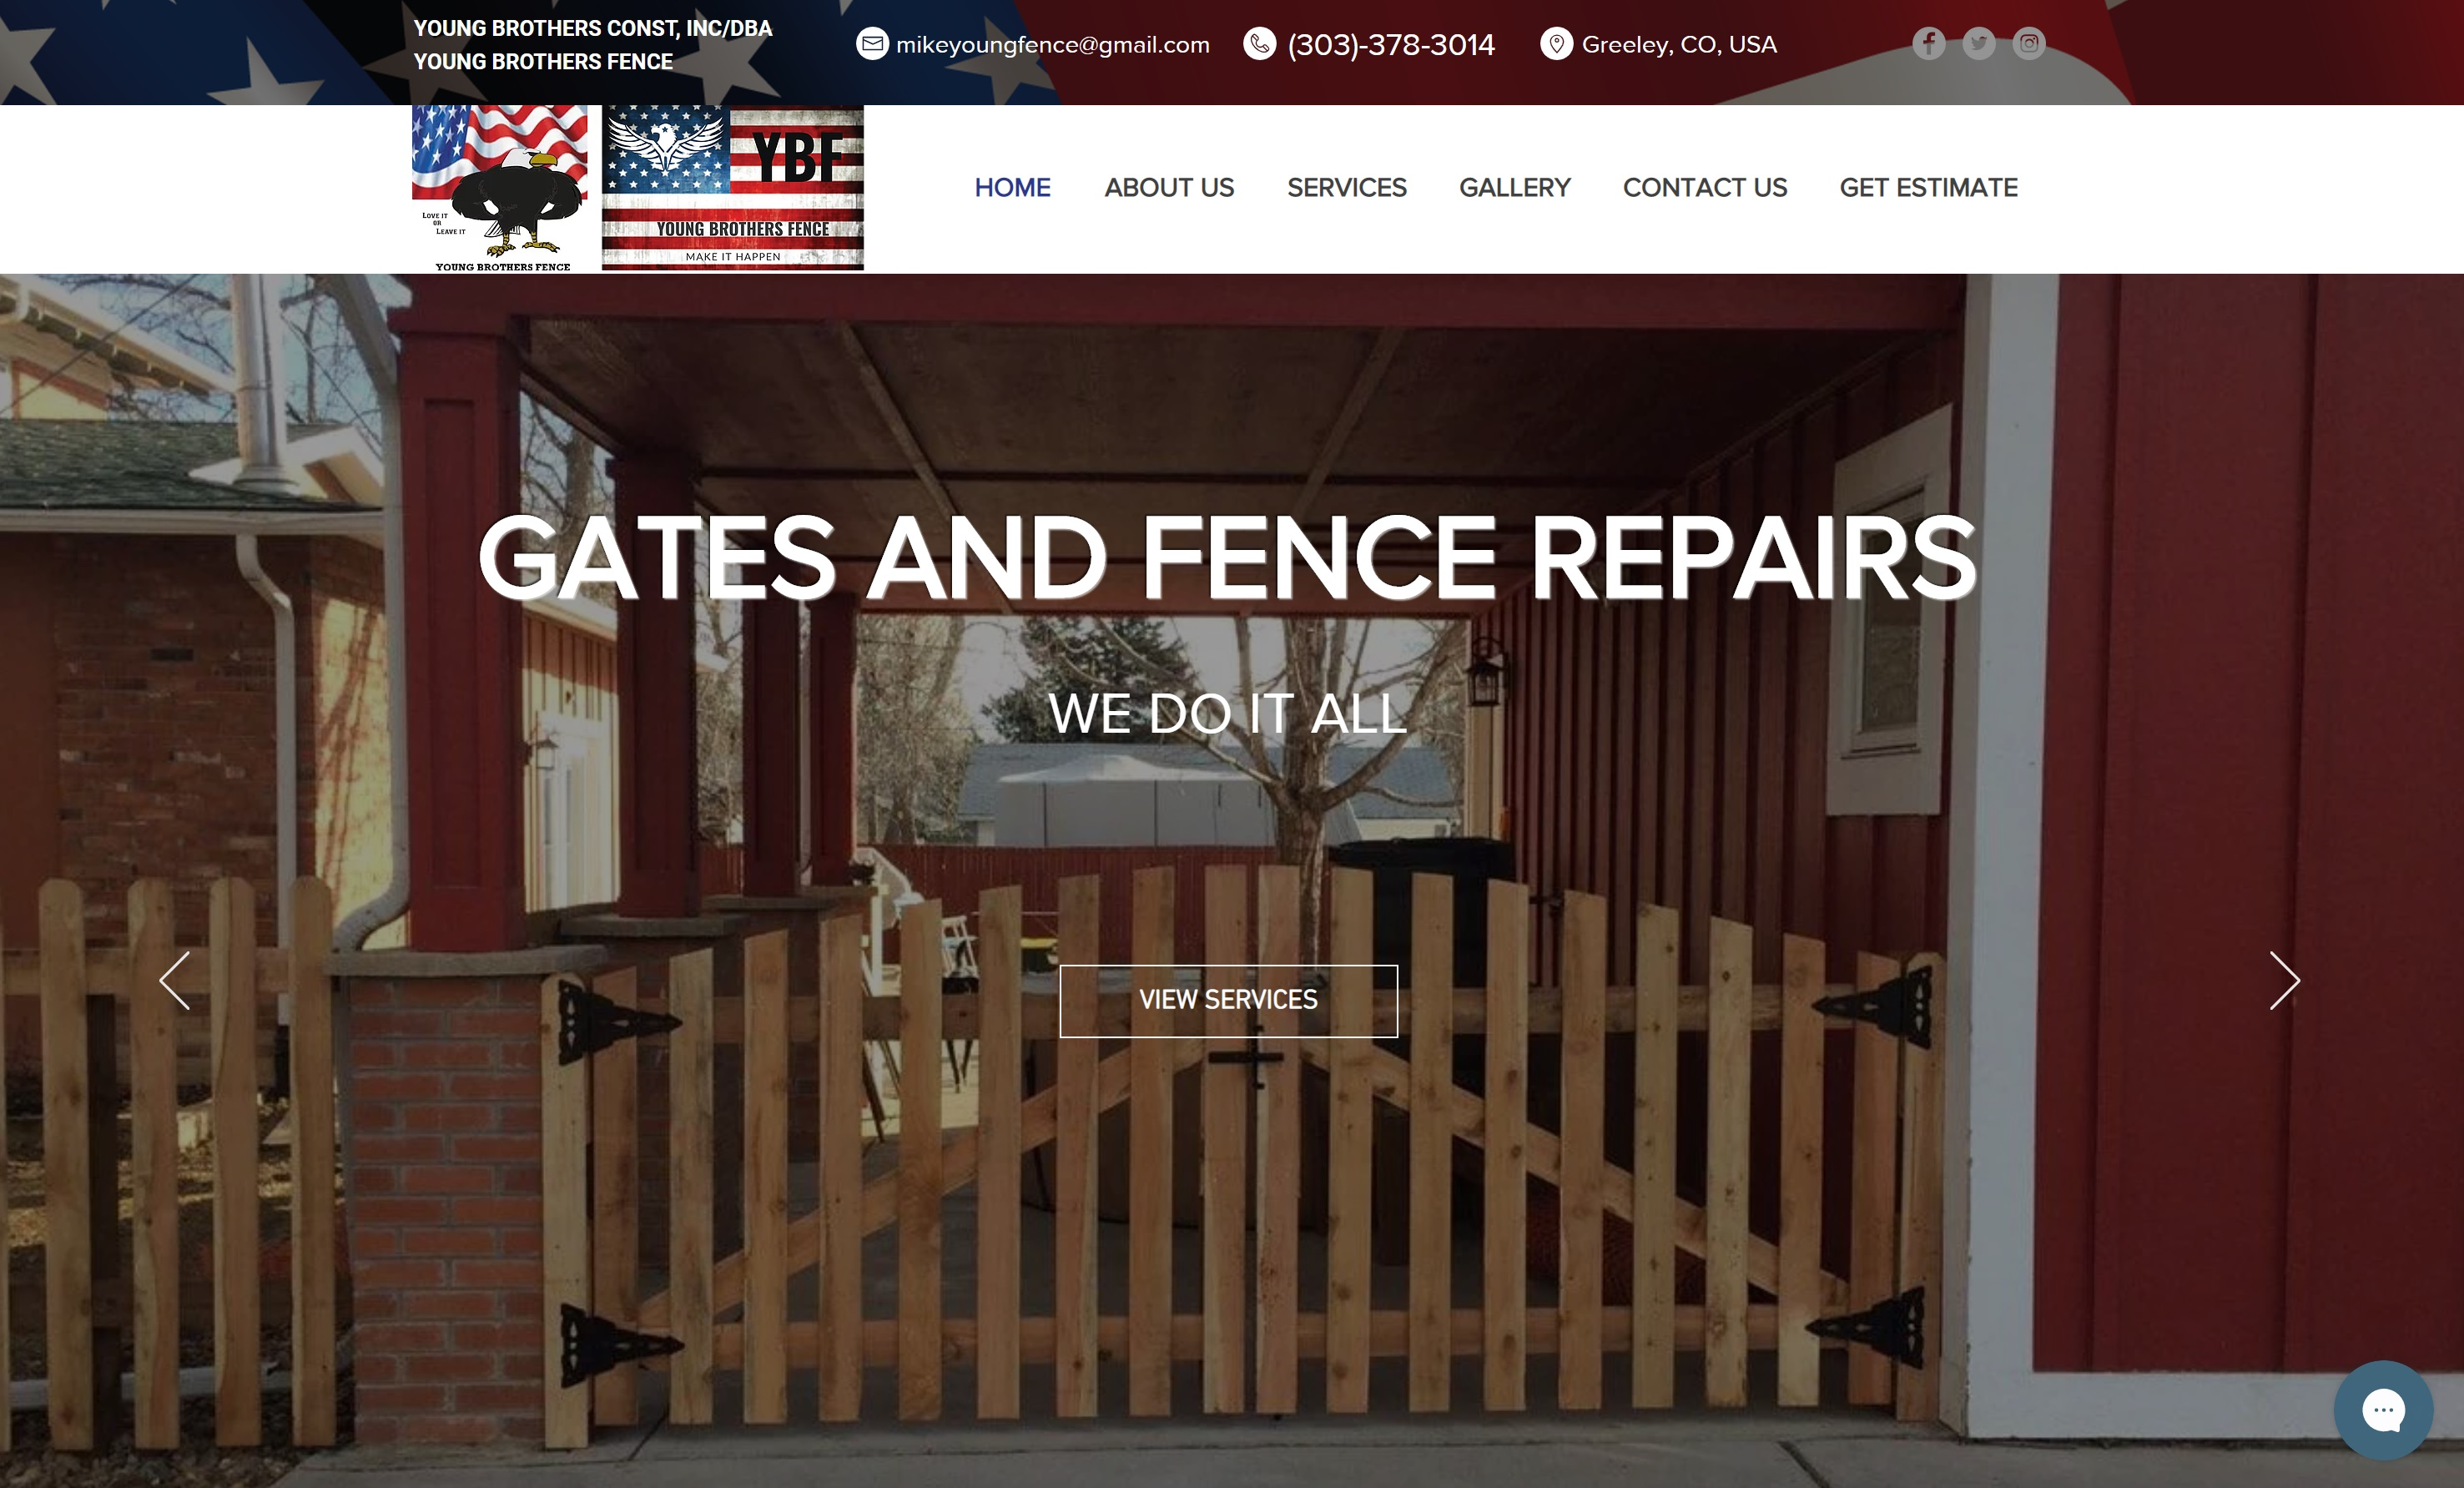 Young Brothers Fence Greeley Designed by